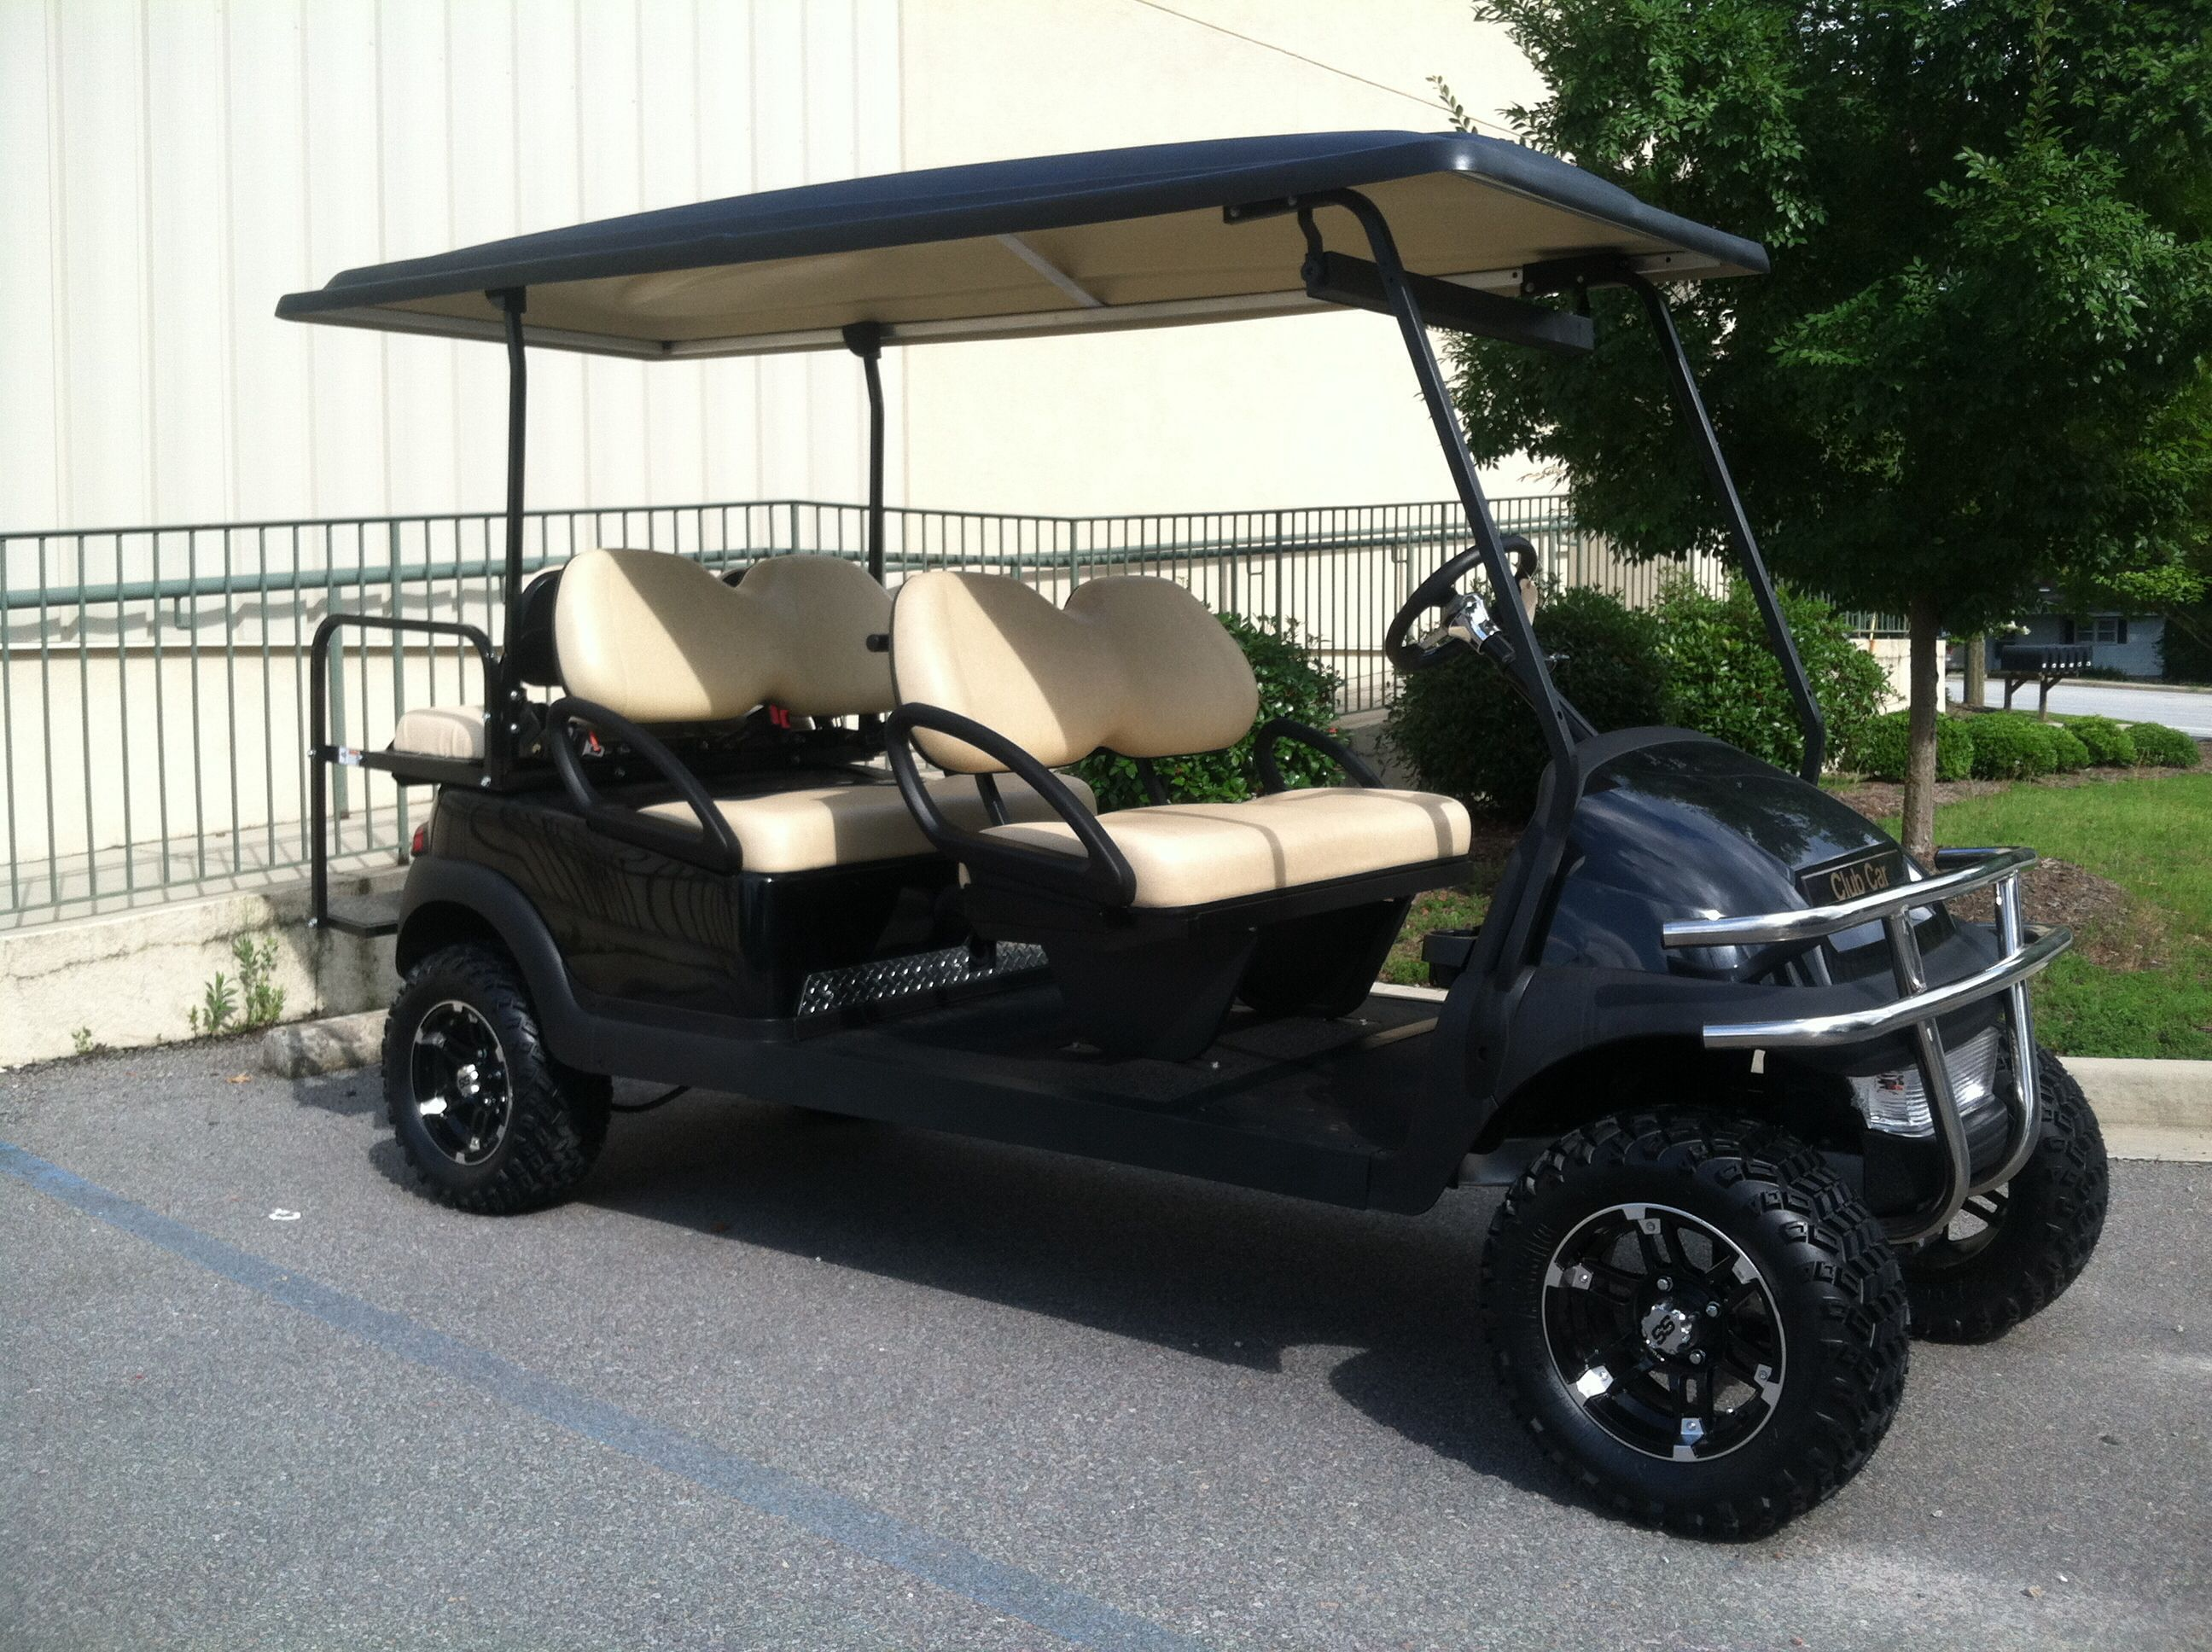 Blacked Out Lifted Limo Golf Carts For Sale At Http Www Kingofcarts Net Golf Carts Golf Trolley Golf Carts For Sale